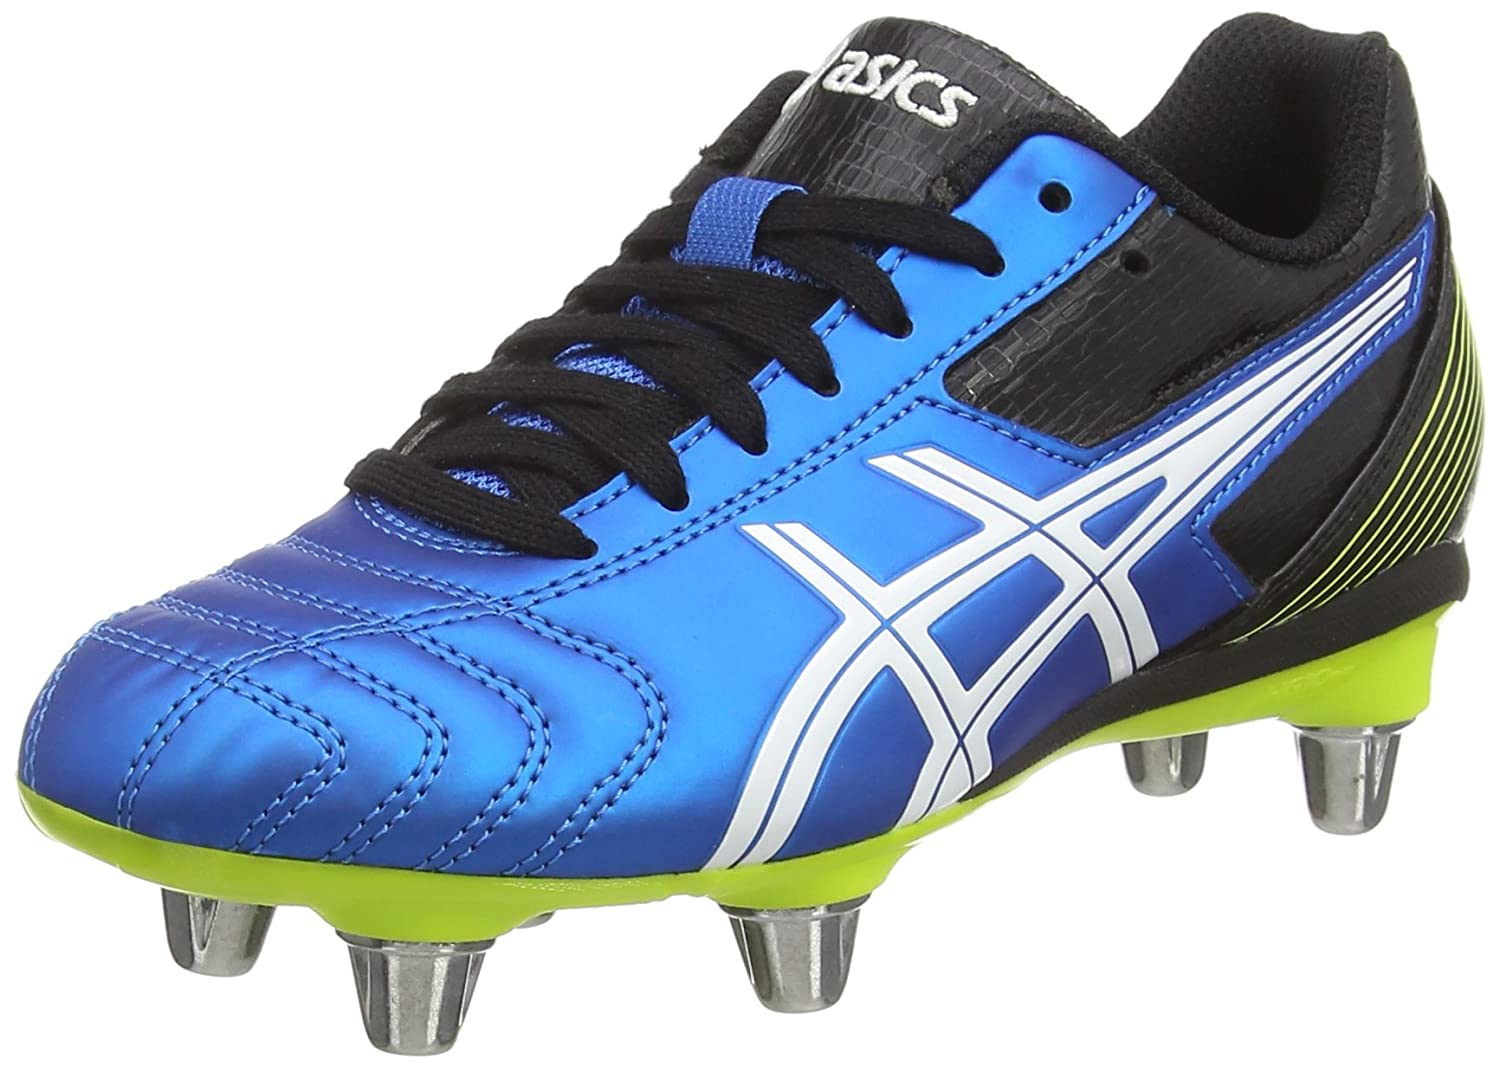 52e610a0ab ASICS Lethal Tackle Gs, Unisex Kids' Rugby Shoes, Blue (Electric ...